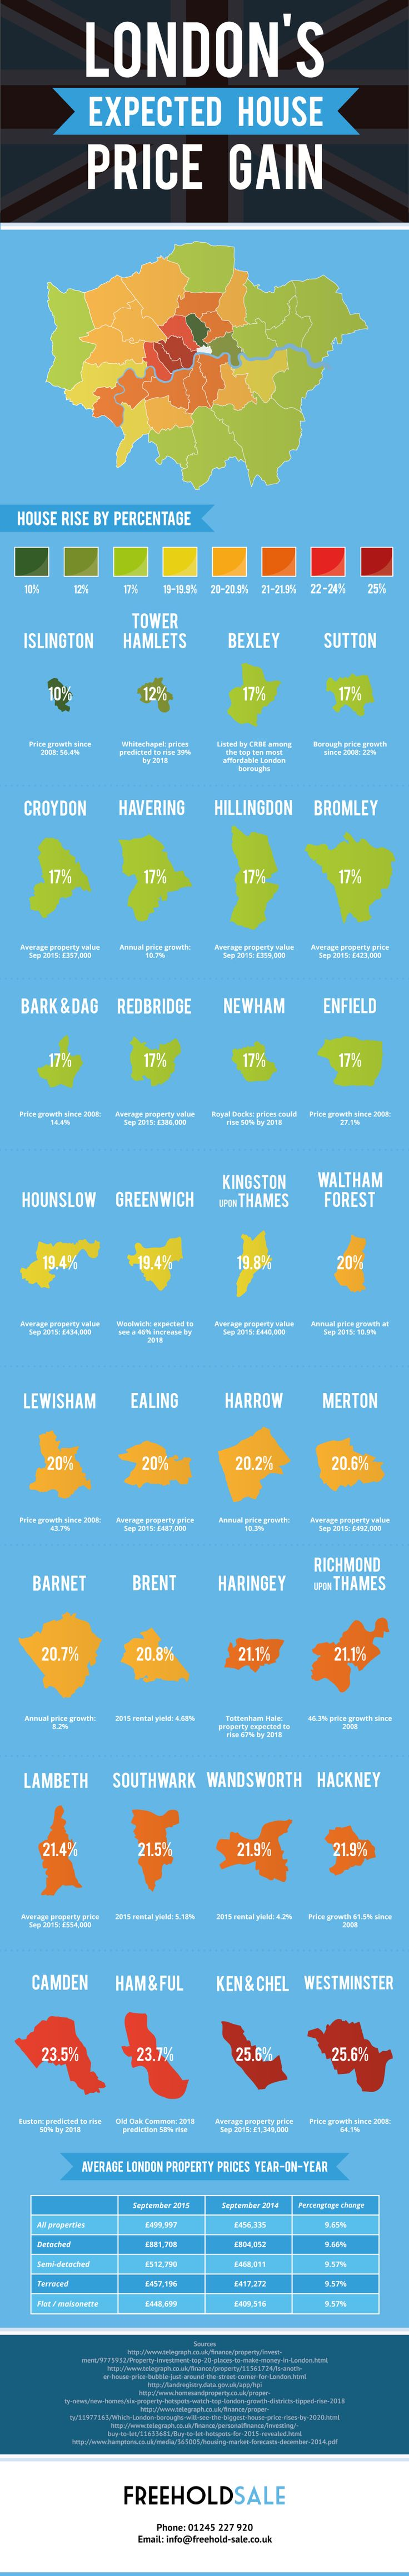 London's expected house price gain infographic